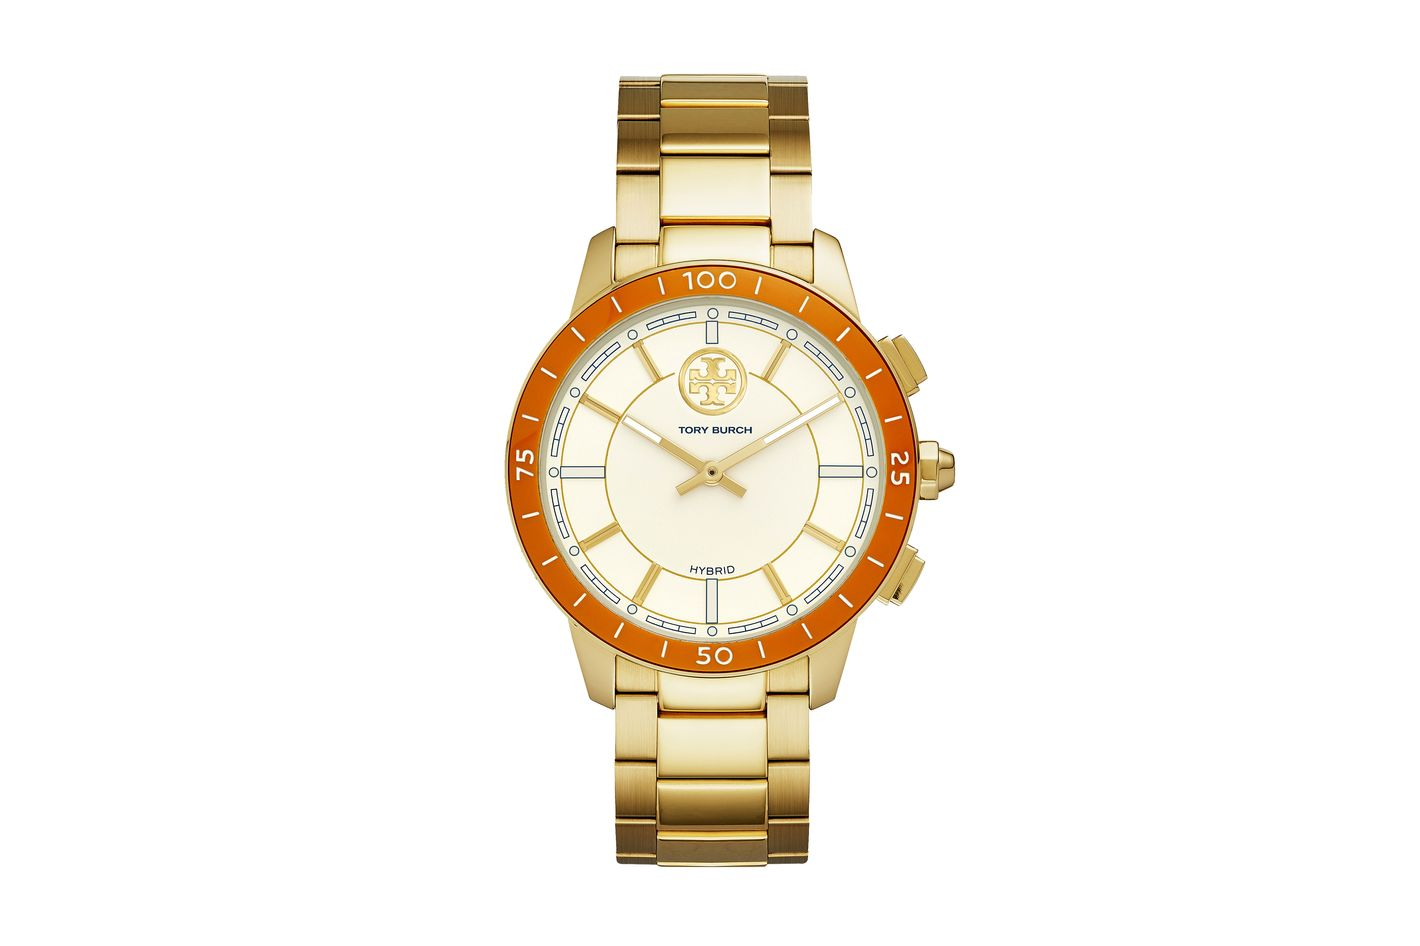 mods twist our check of with classic modern dinka pin a watches the preppy watch interpretation s